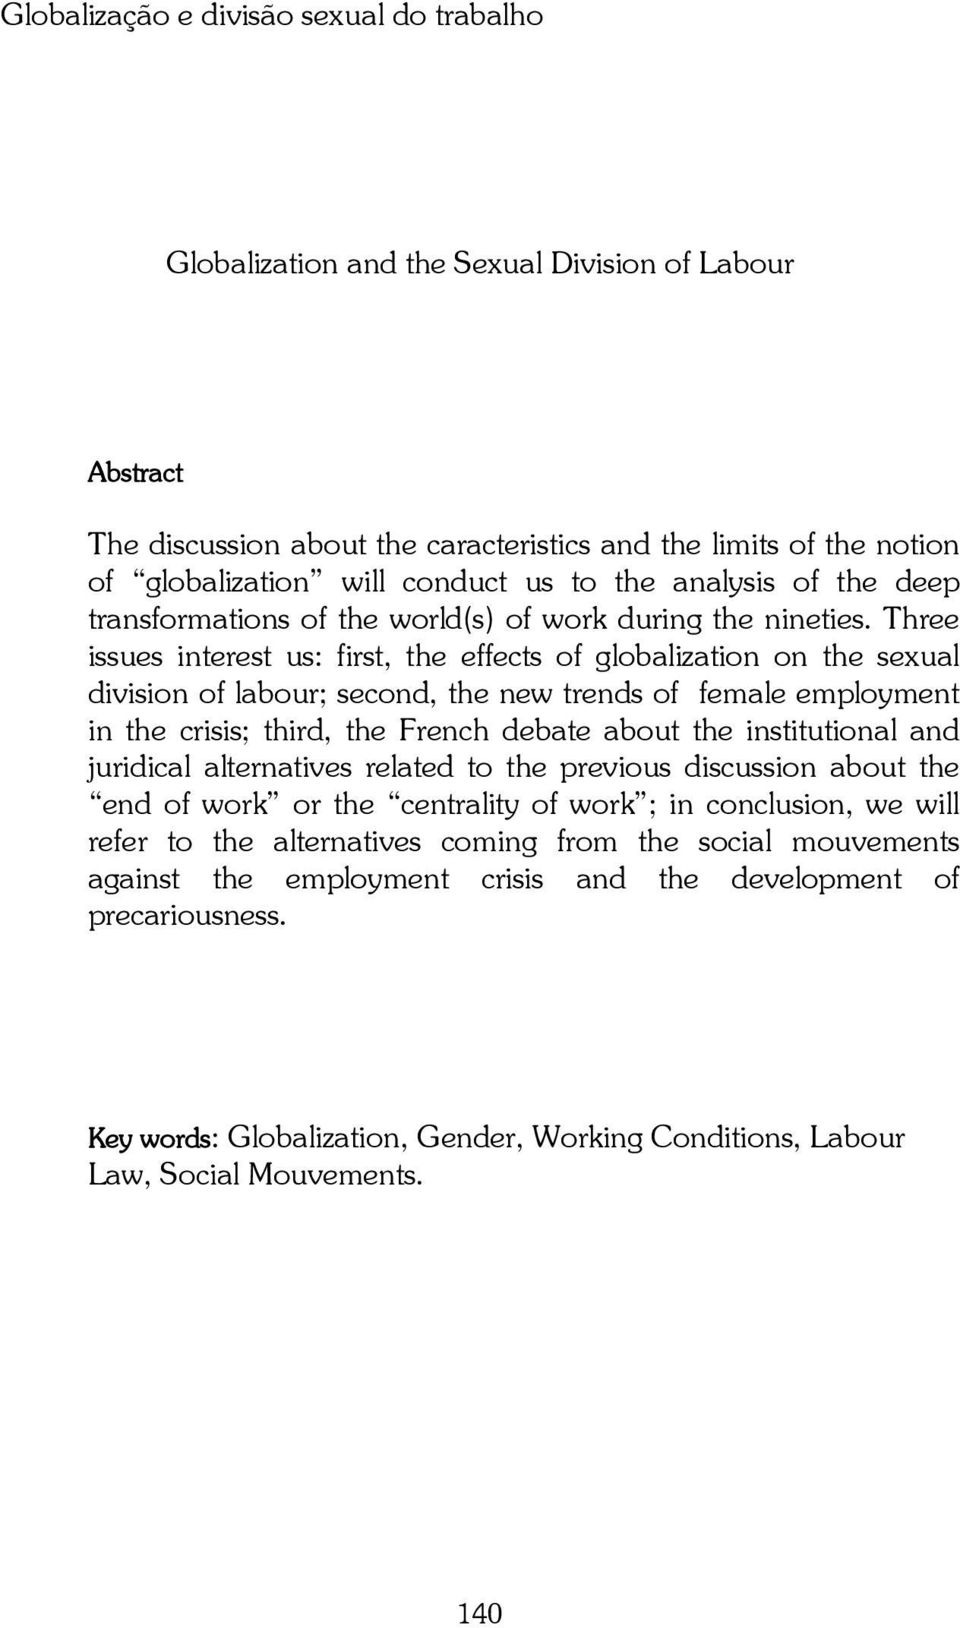 Three issues interest us: first, the effects of globalization on the sexual division of labour; second, the new trends of female employment in the crisis; third, the French debate about the